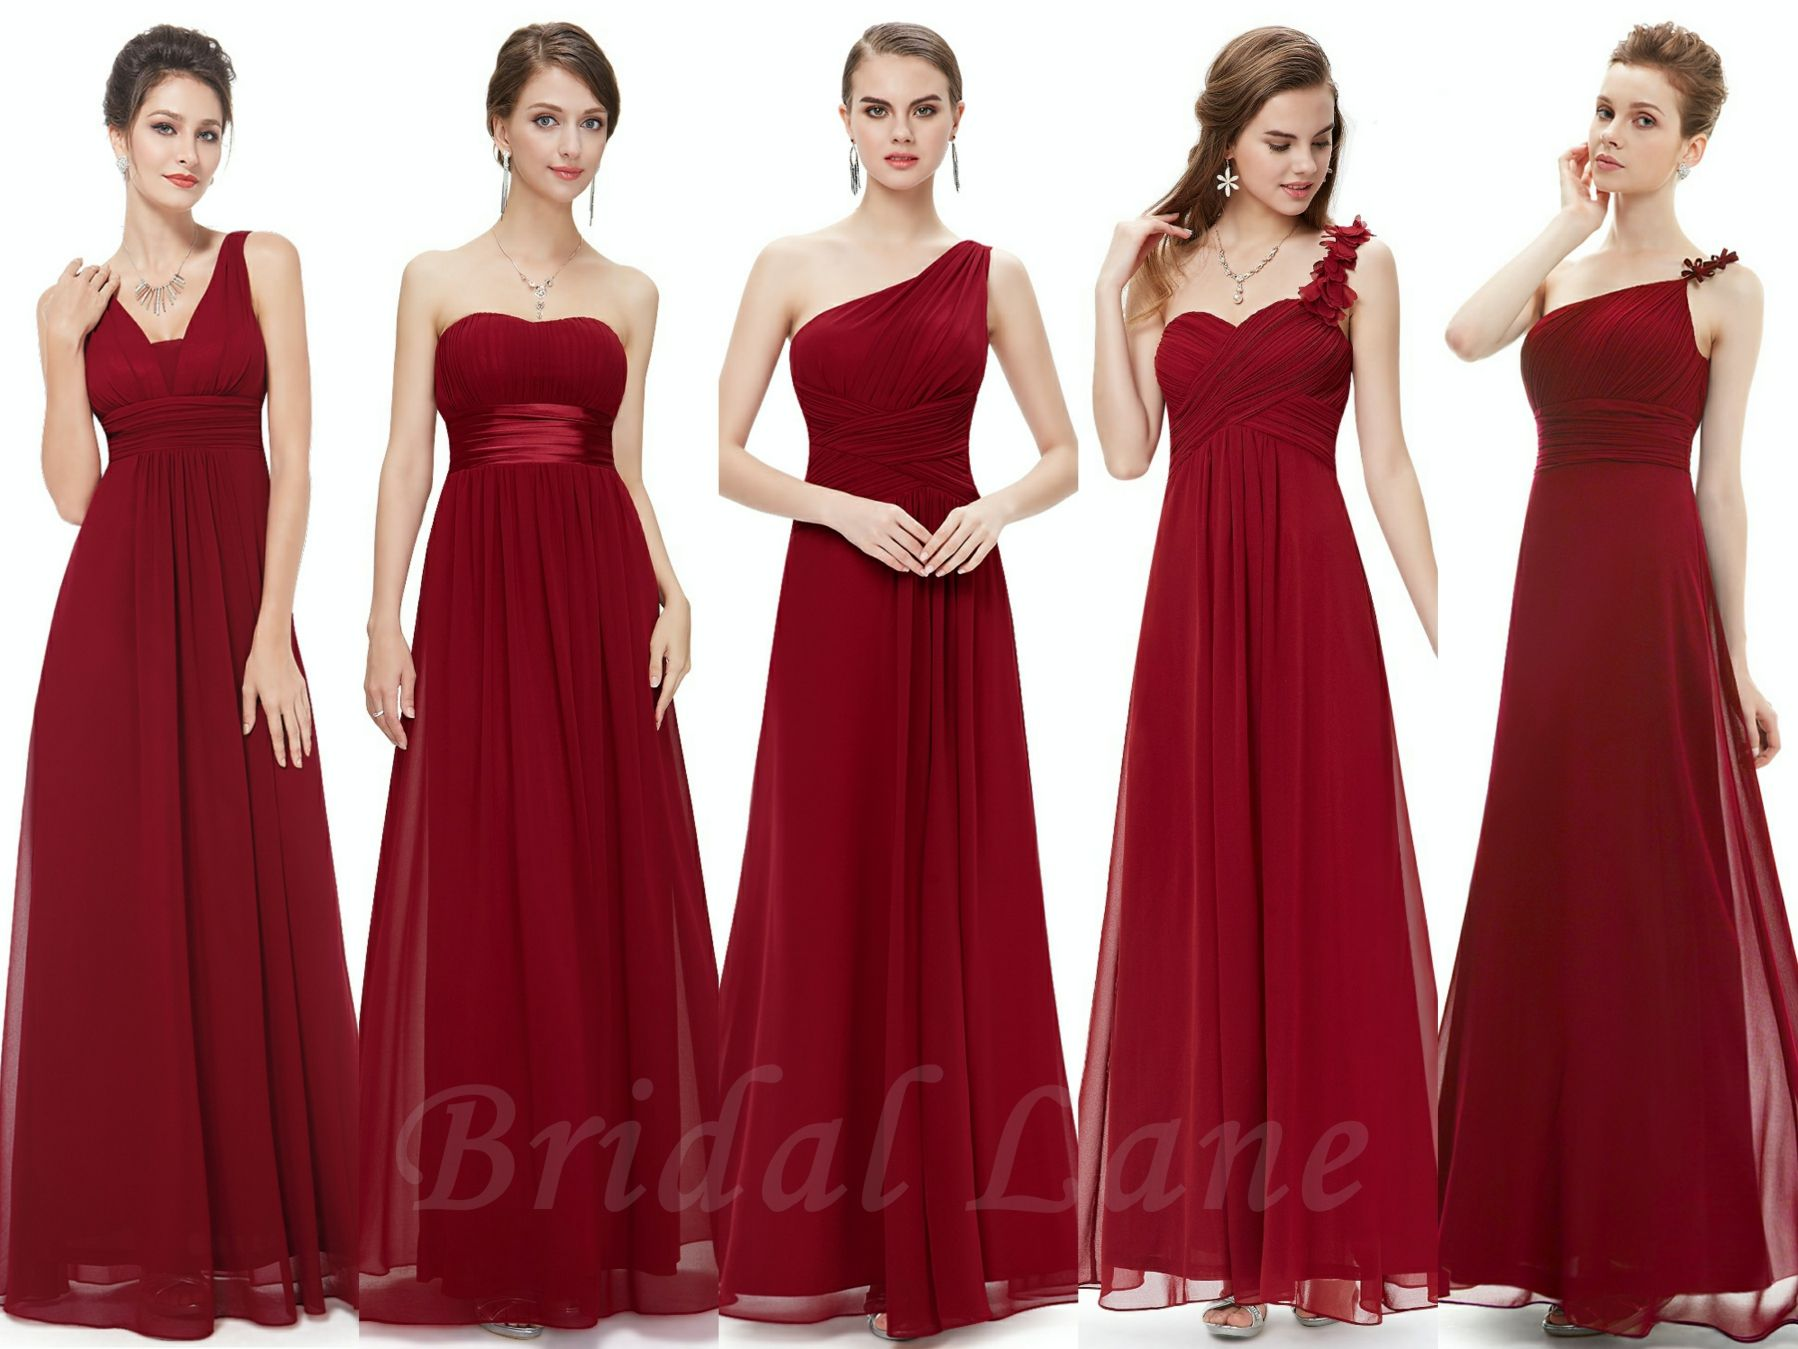 Burgundy Wine Red Bridesmaid Dresses Bridal Lane Cape Town